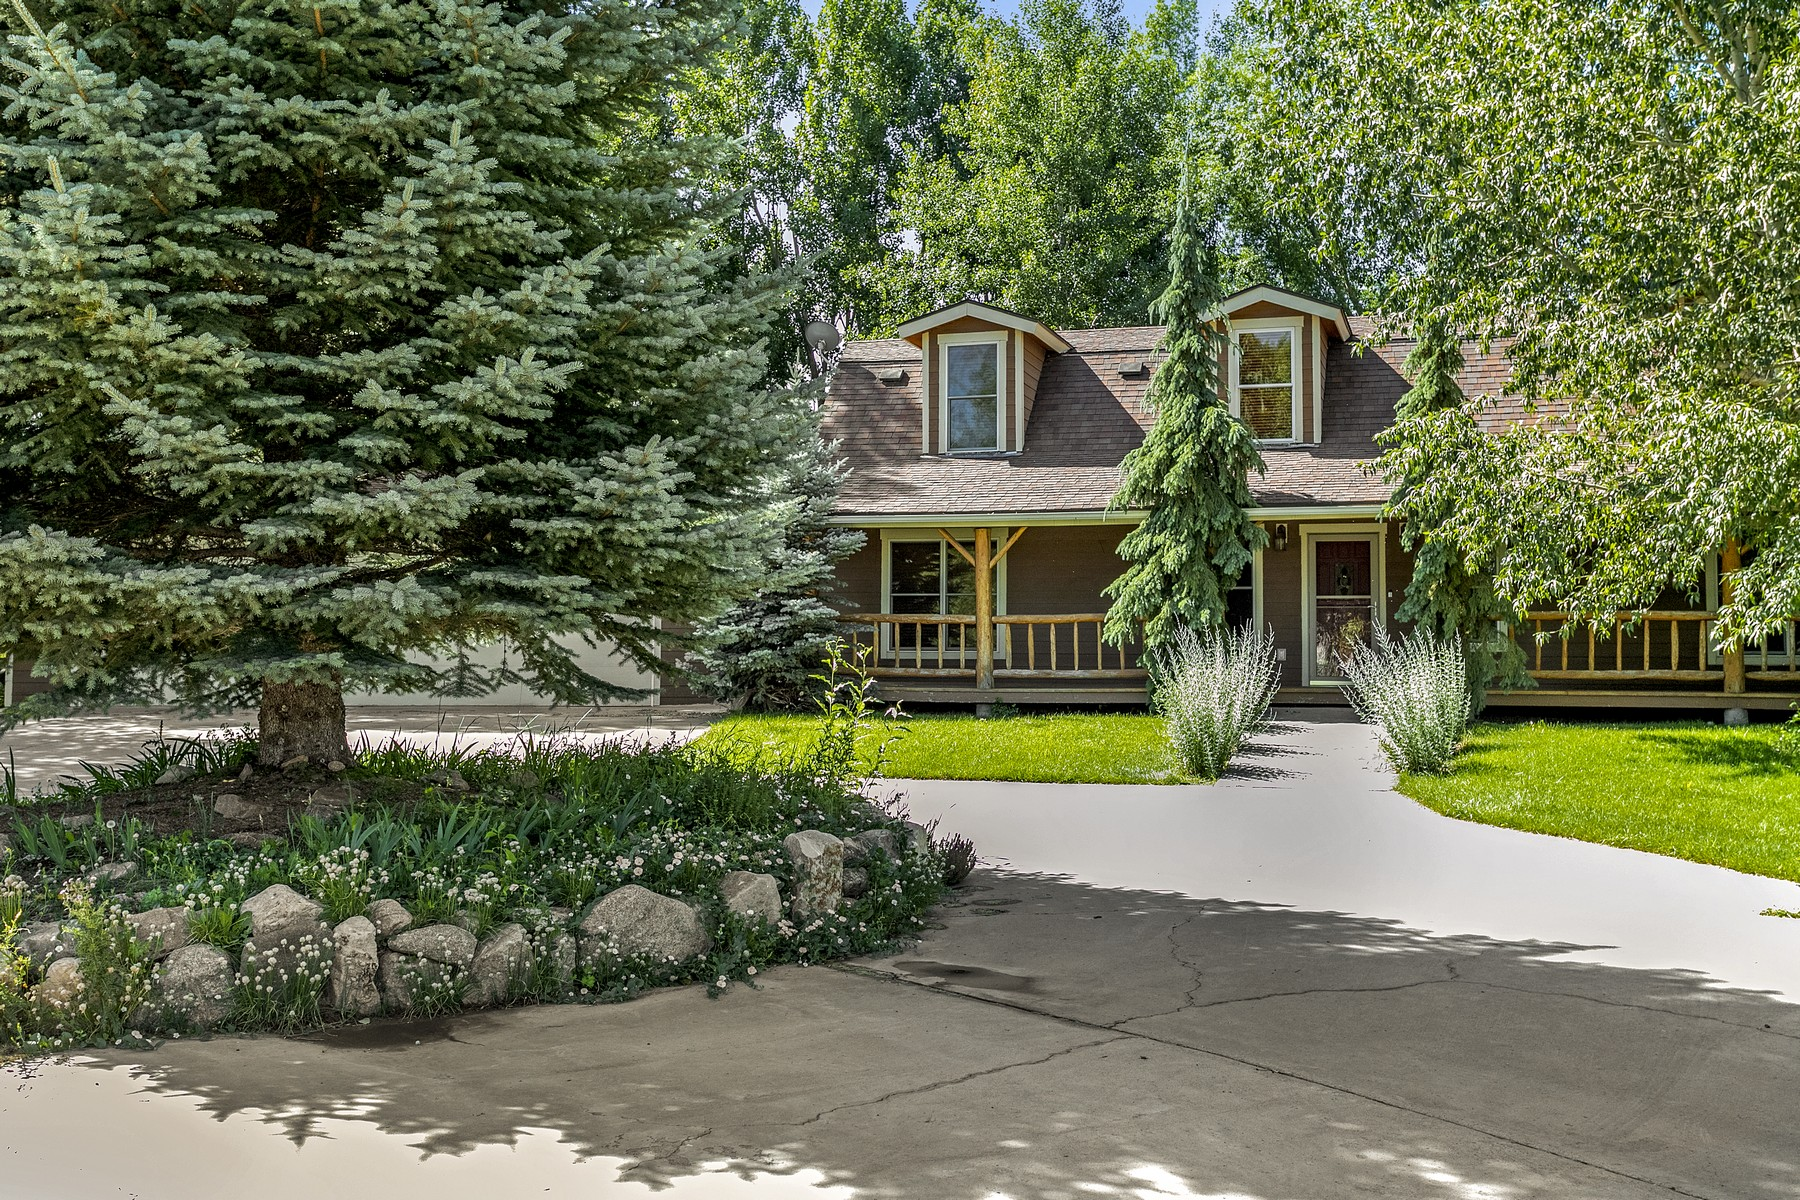 Single Family Homes for Sale at Beautiful updated home with 3 car garage 903 Mayne Street Gypsum, Colorado 81637 United States